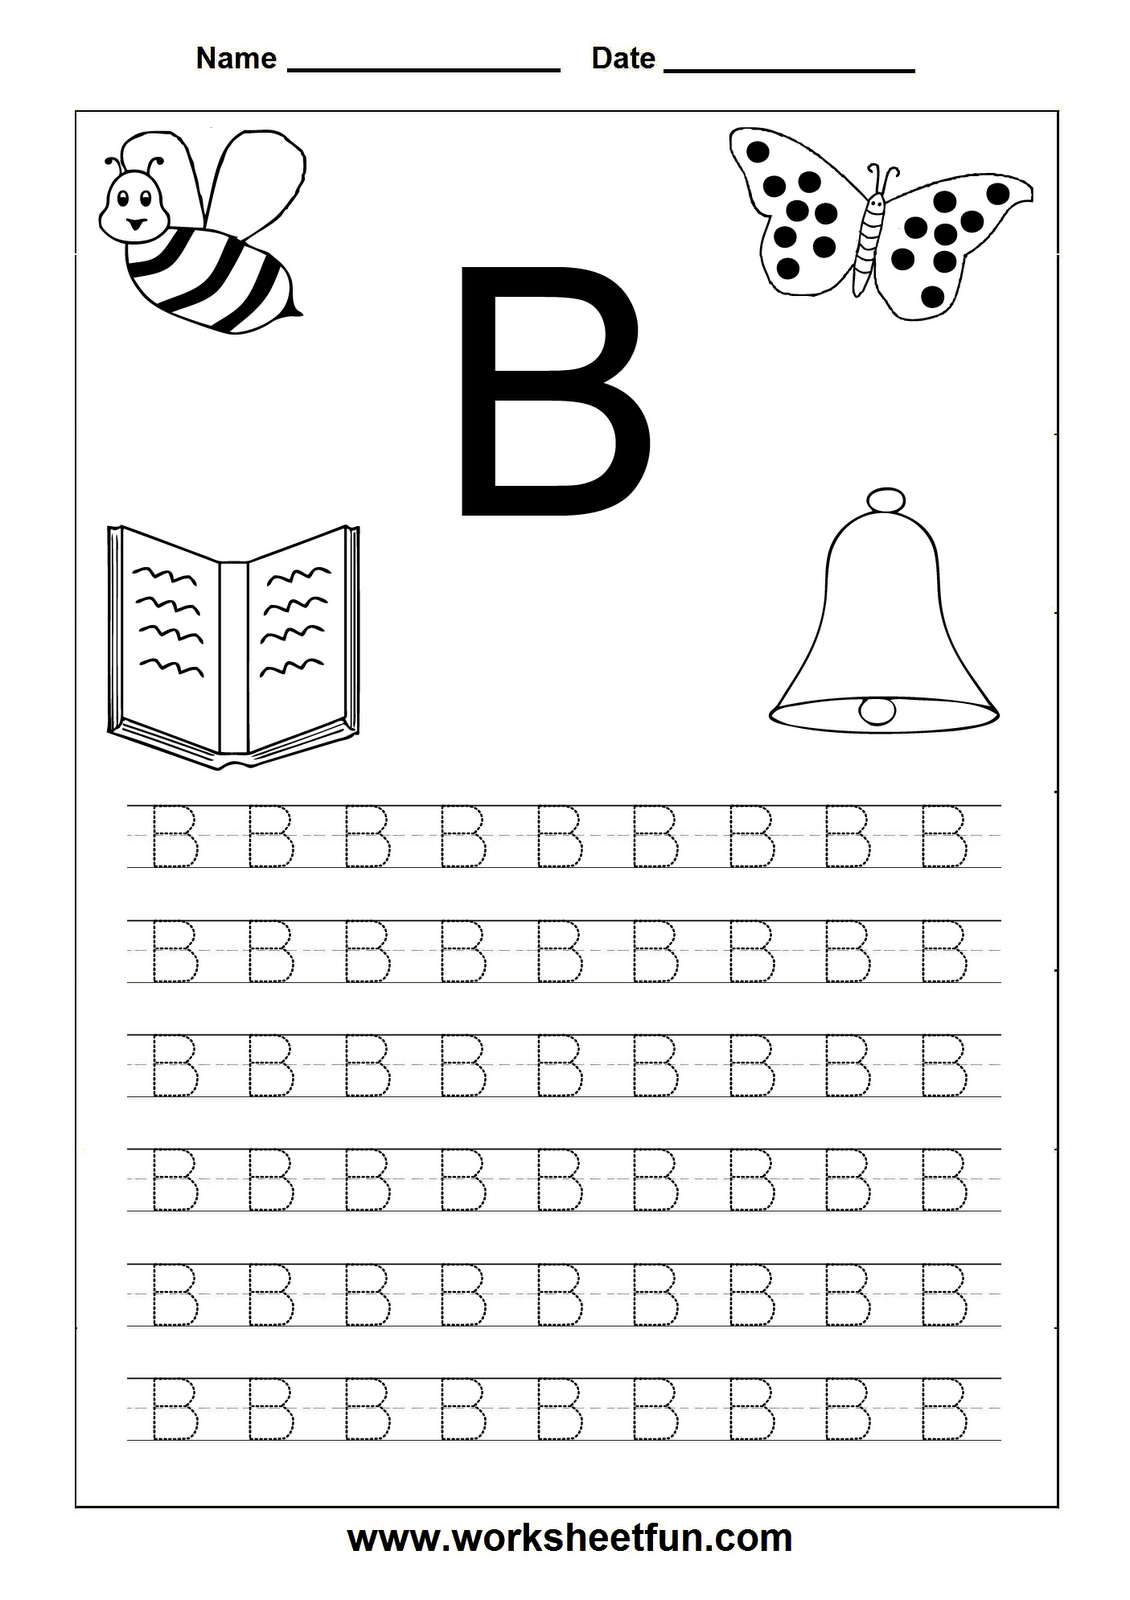 math worksheet : printable alphabet worksheets for kindergarten  khayav : Alphabets Worksheets For Kindergarten